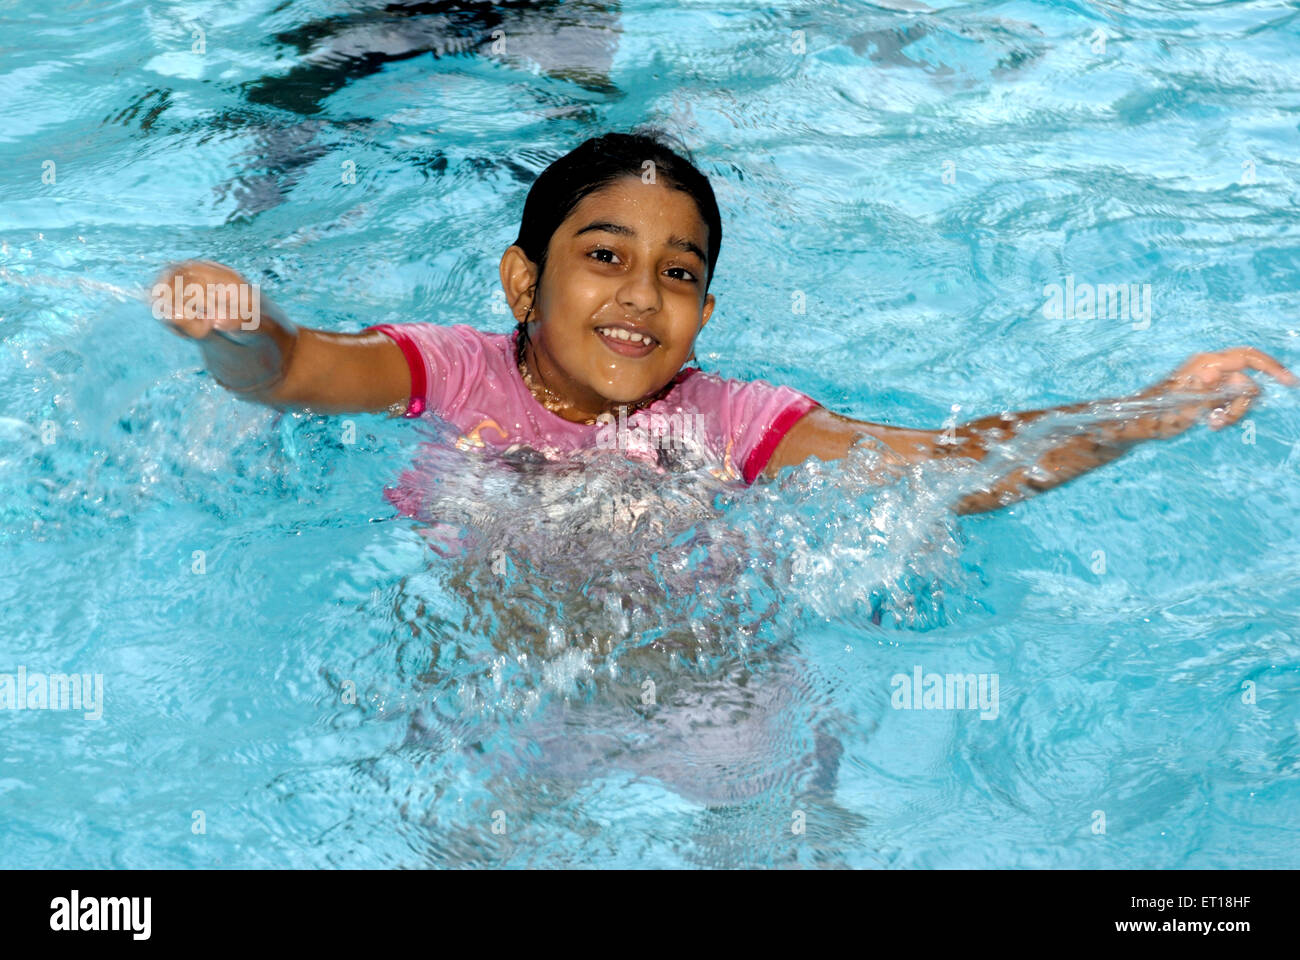 Eight year girl swimming in swimming pool MR# 152 November 2008 - Stock Image